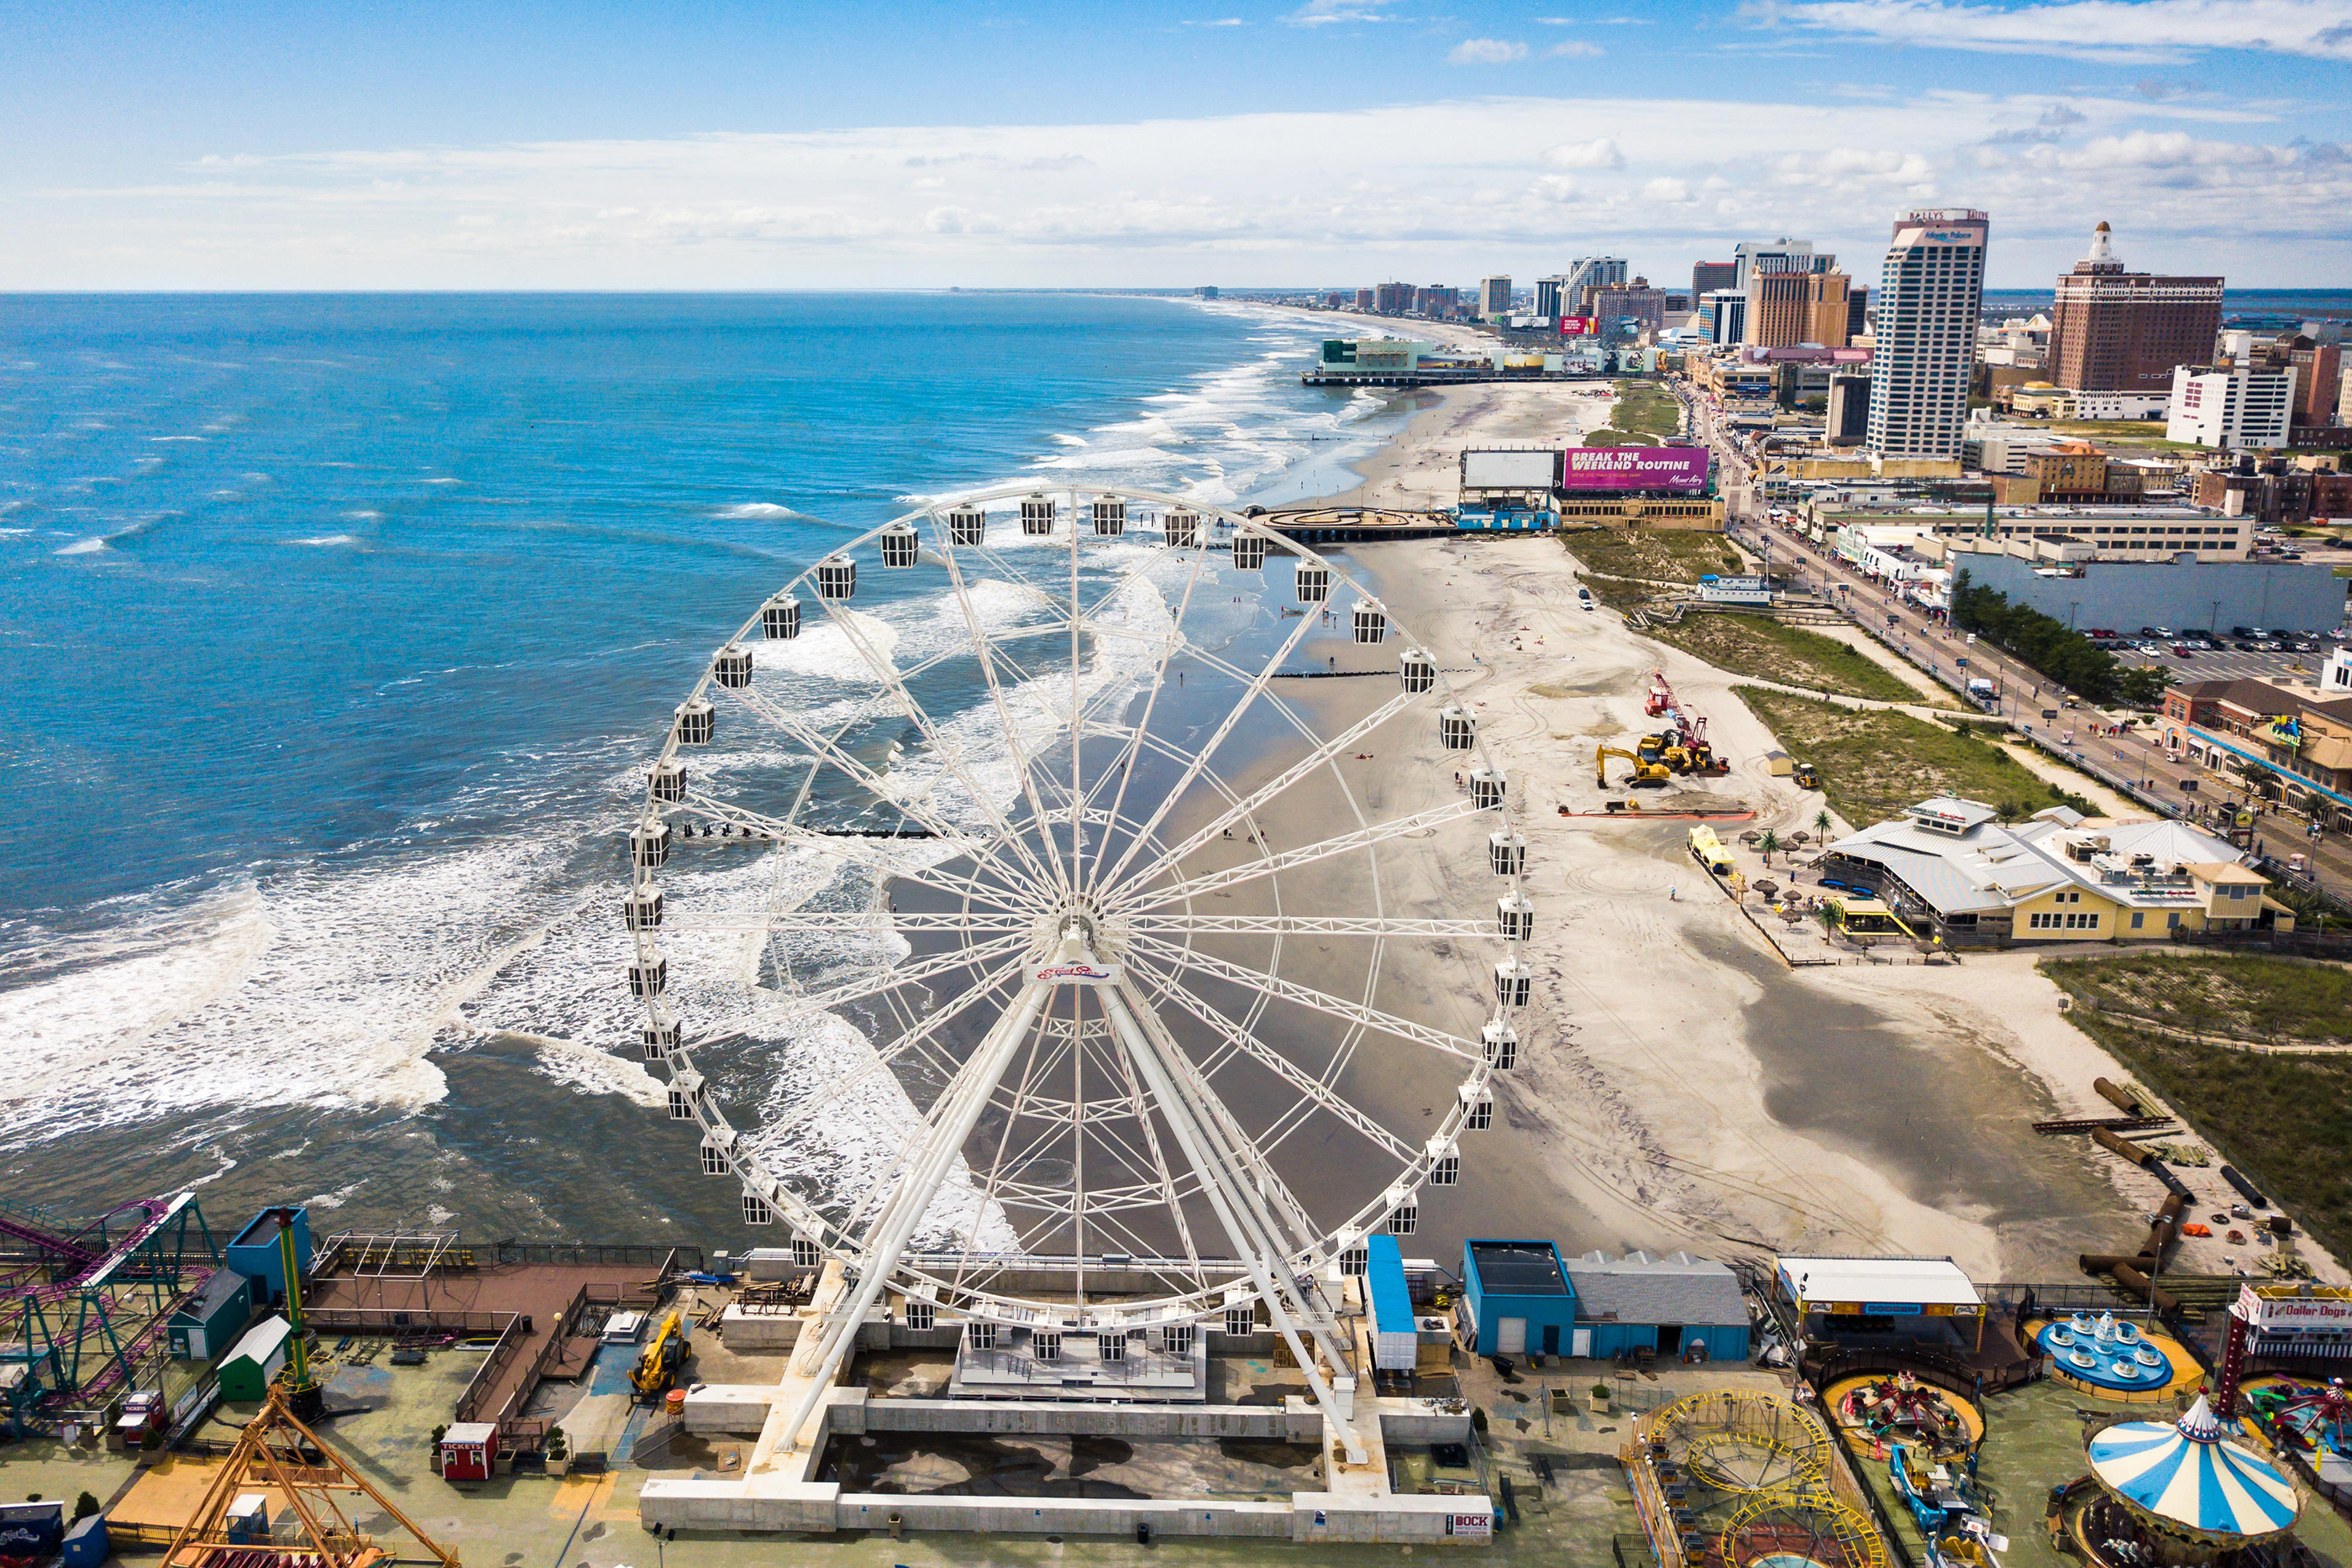 ATLANTIC CITY, USA - SEPTEMBER 20, 2017: Atlantic city waterline aerial view. AC is a tourist city in New Jersey famous for its casinos, boardwalks, a